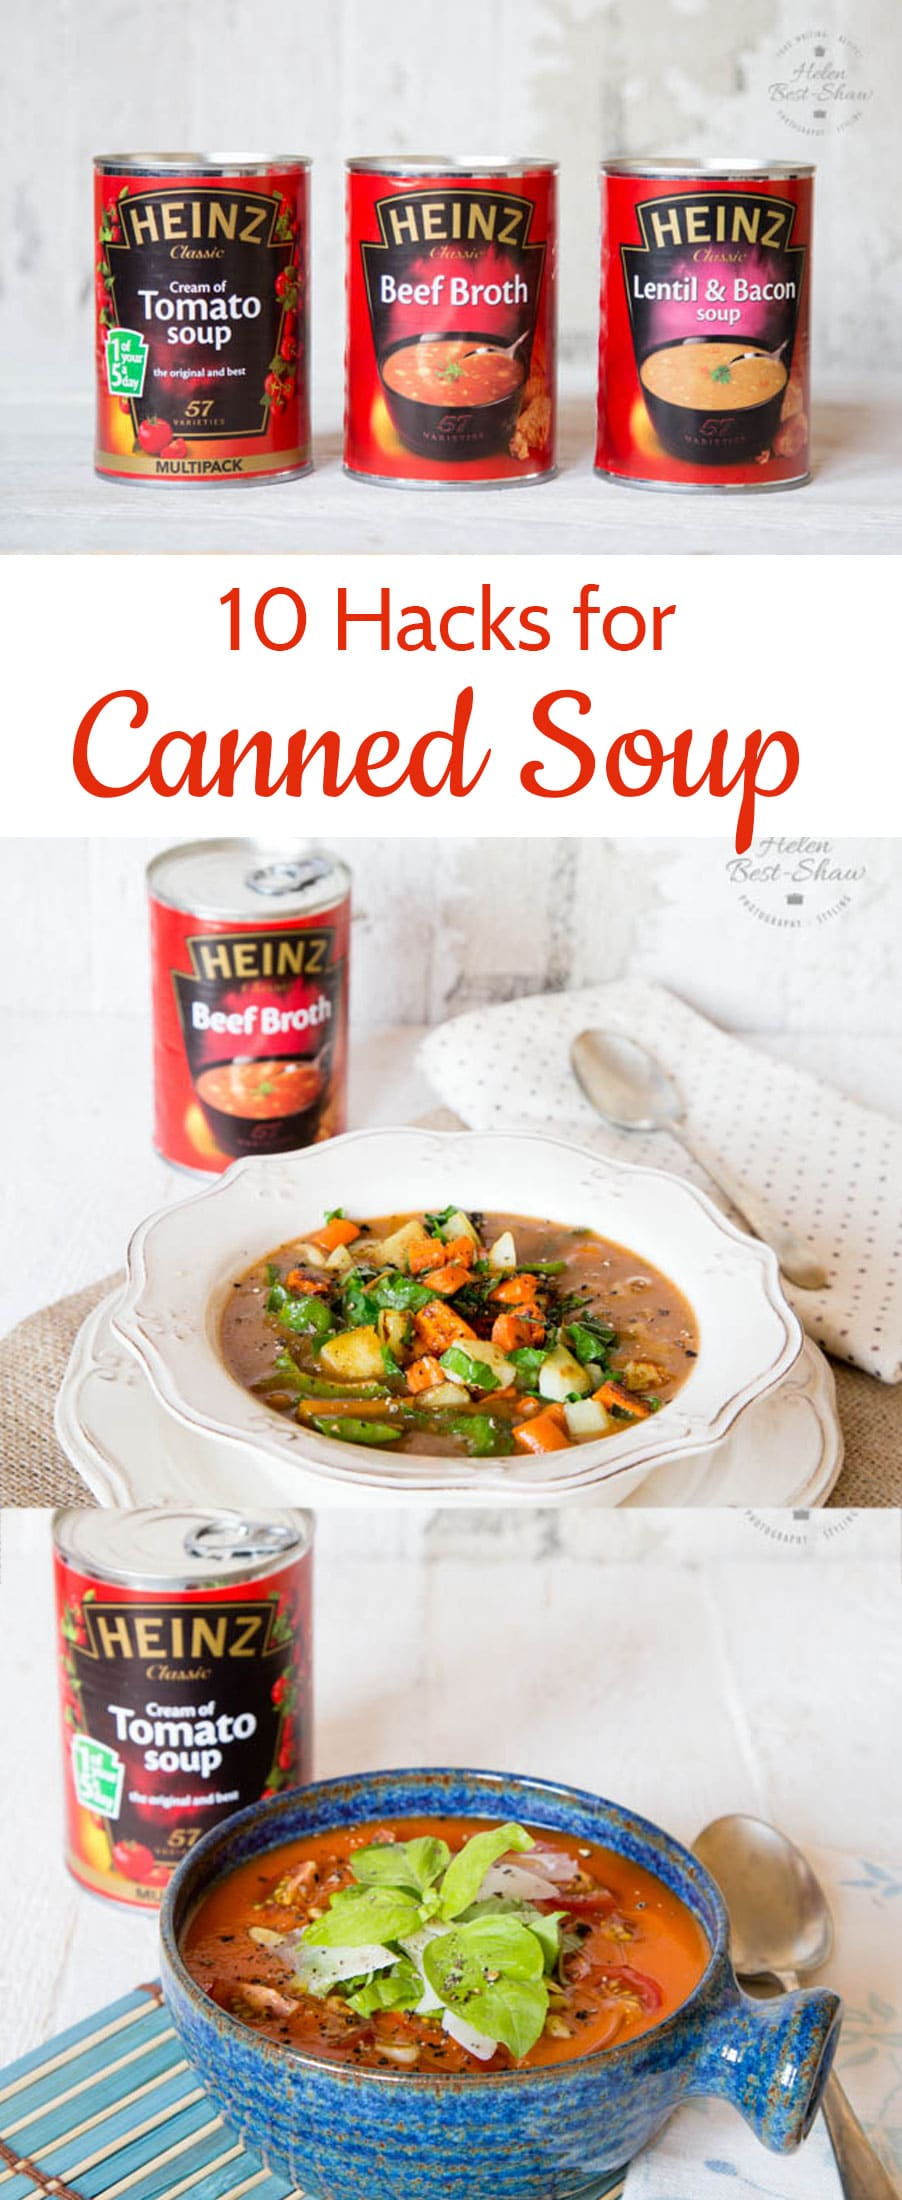 Canned soups make an excellent base for a meal, here are some handy, easy tips to perk up your soup from the store cupboard.